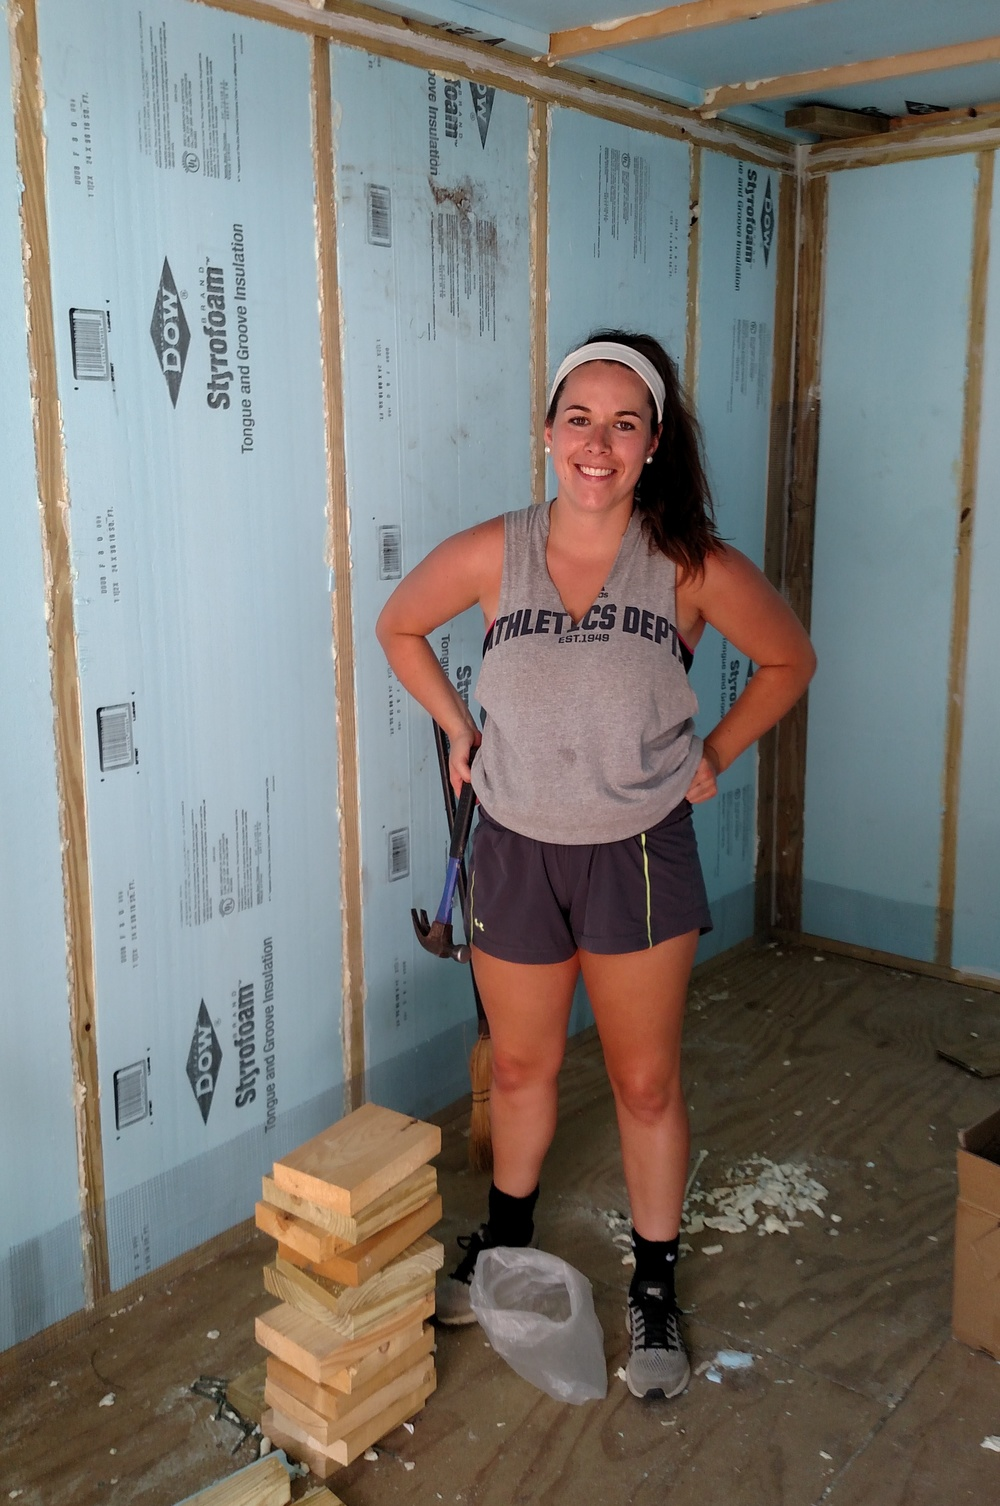 CHCV's new UVM Intern Holly St. Jean, helps with cooler building on her first day.  We look forward to having her help in all aspects of the program over the summer and maybe in to the fall.